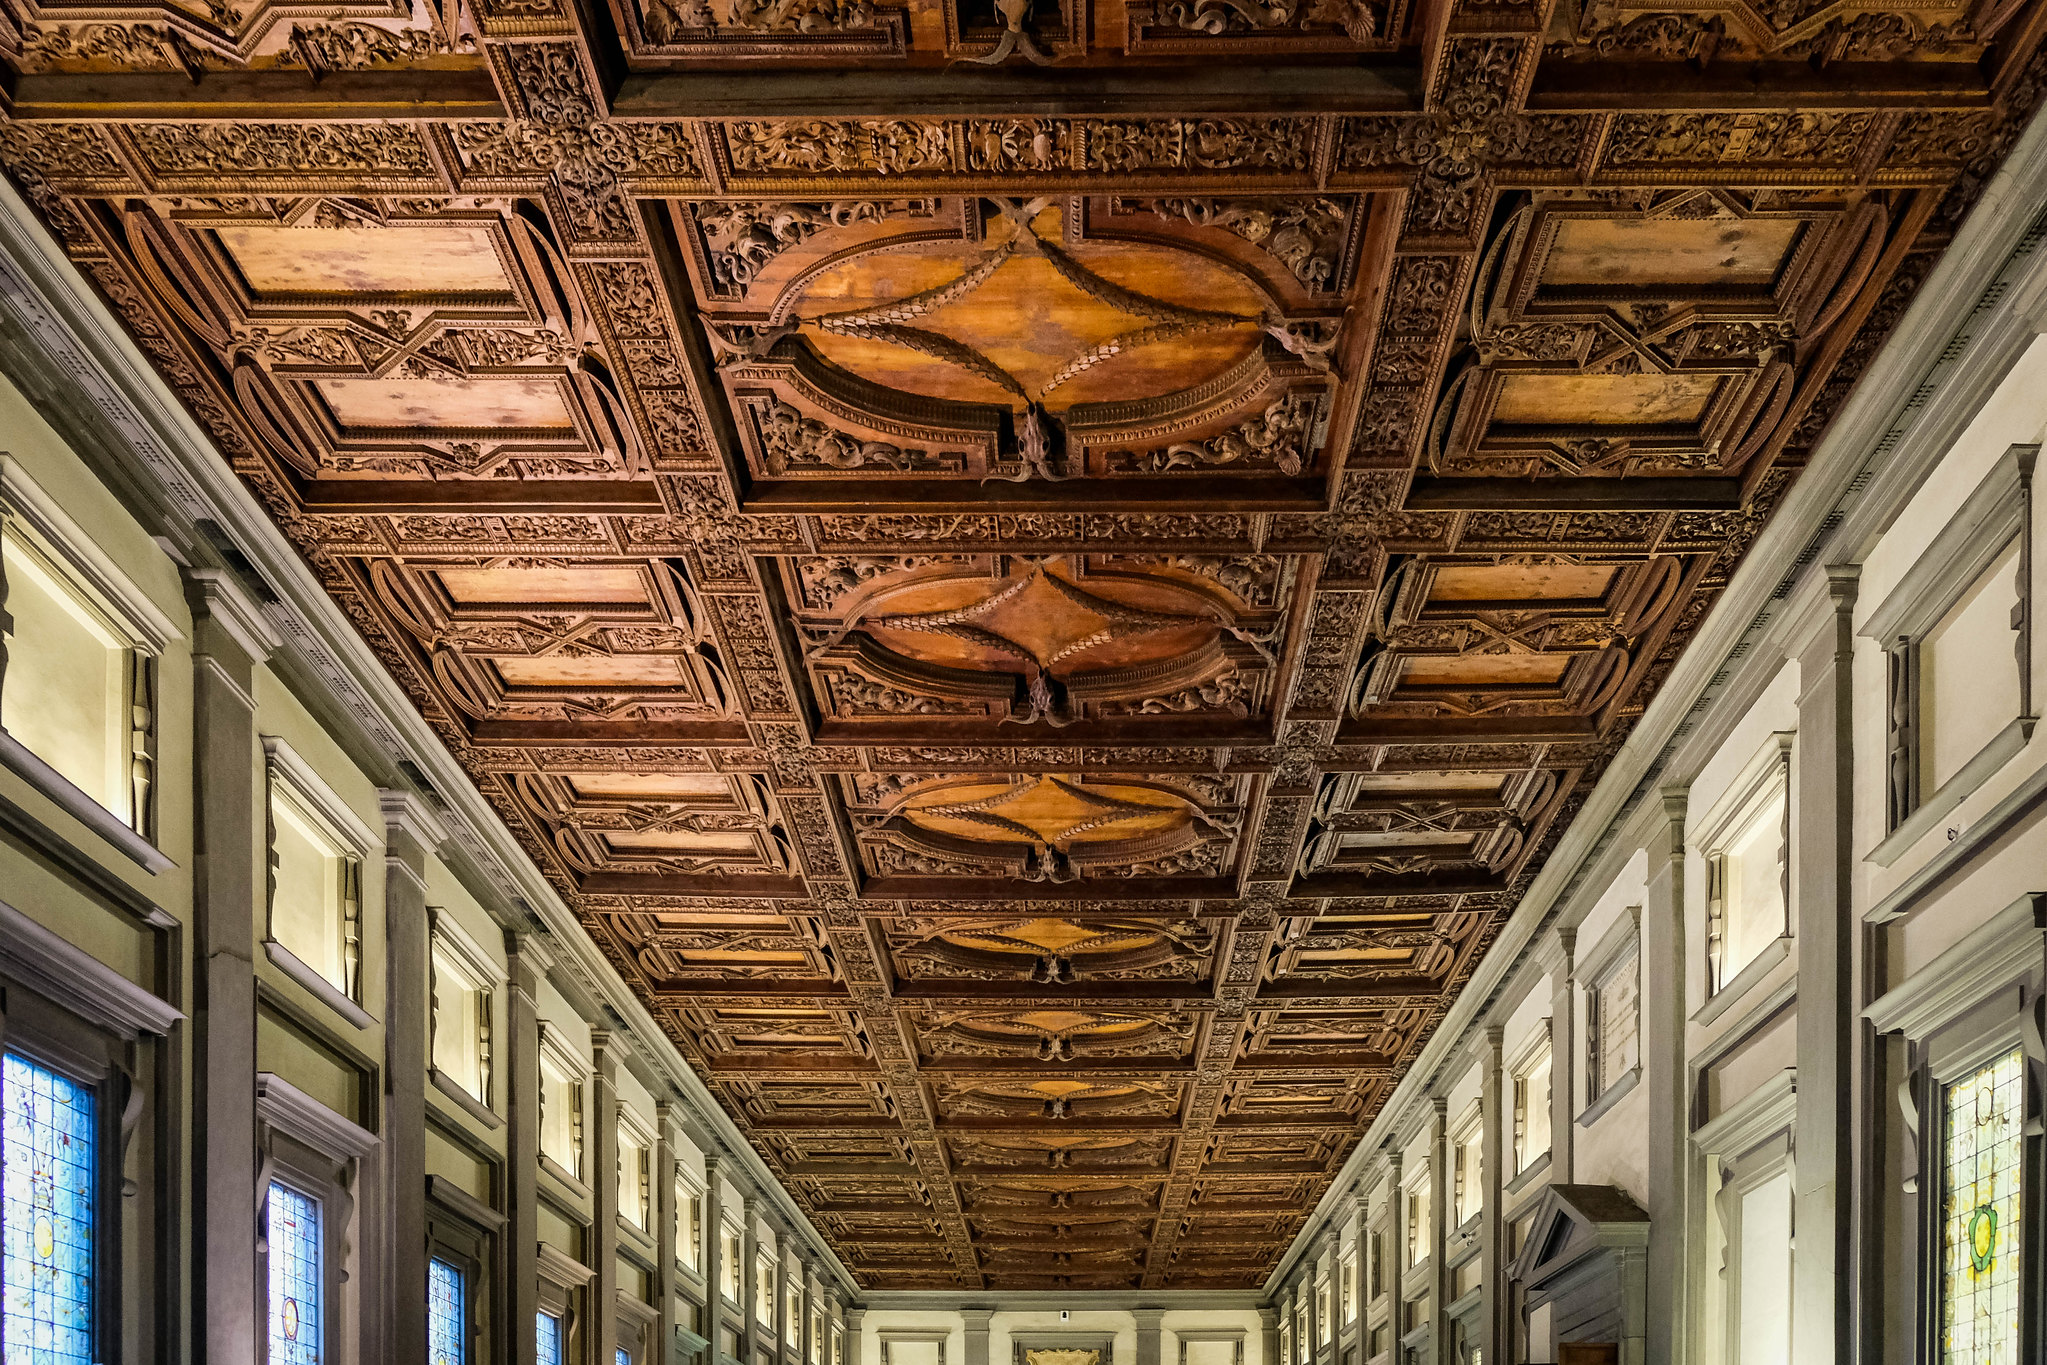 Amazing wooden ceiling of the library